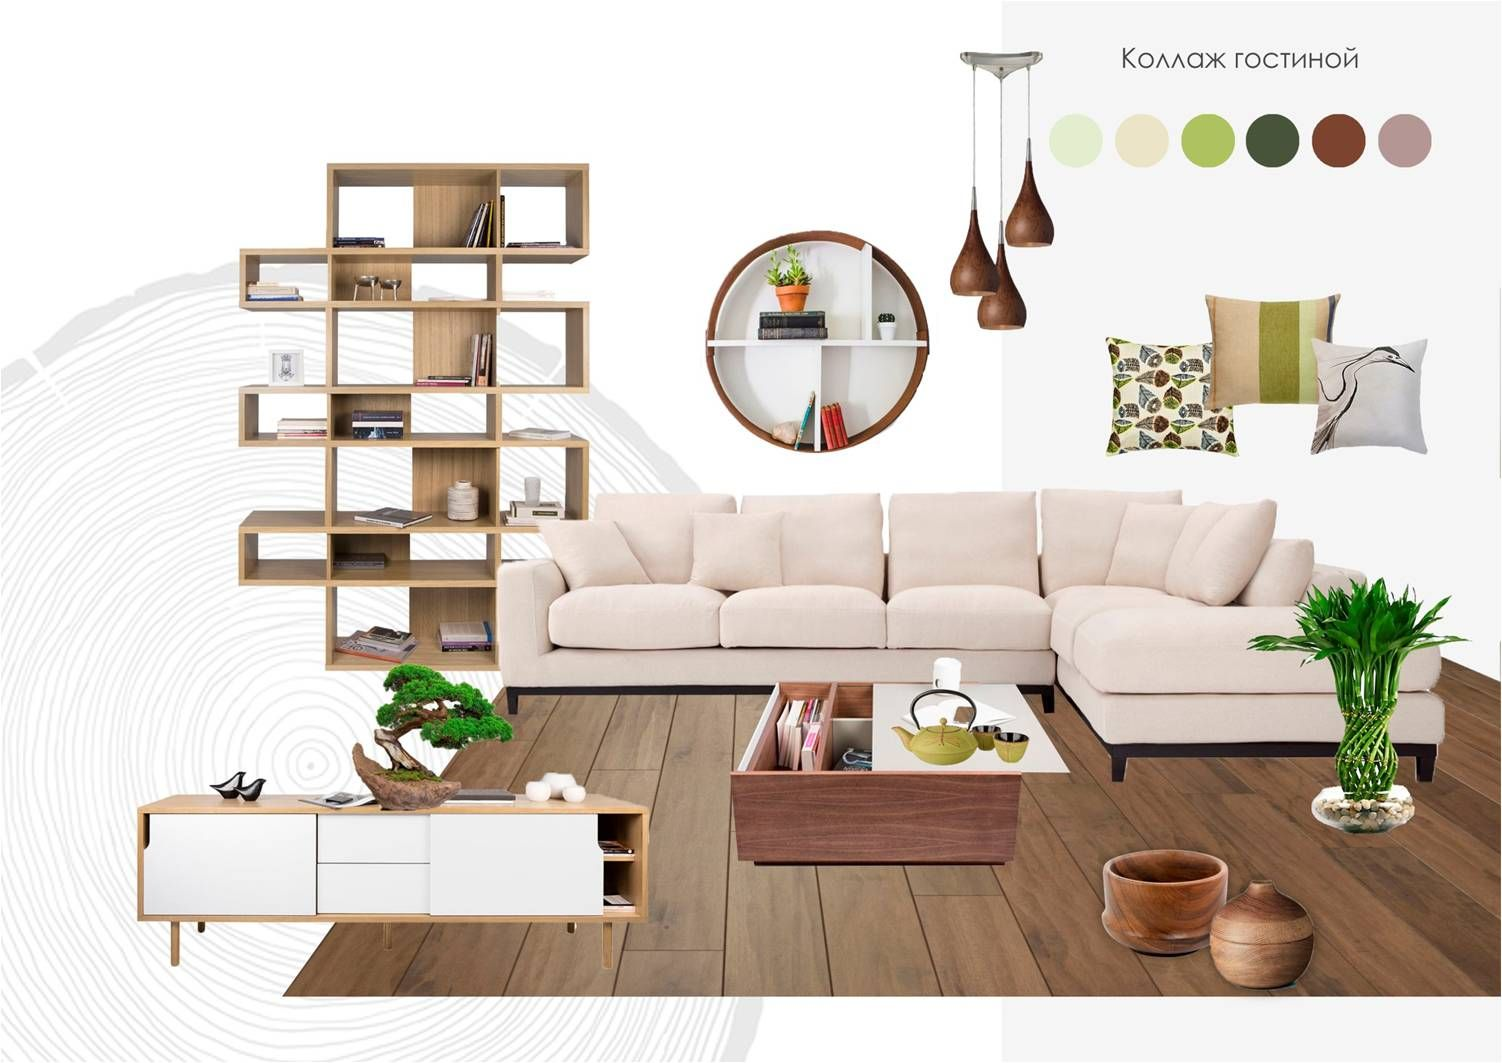 Contemporary Japanese Style Living Room Collage By Kristina Zibrova Interior Design Course Student